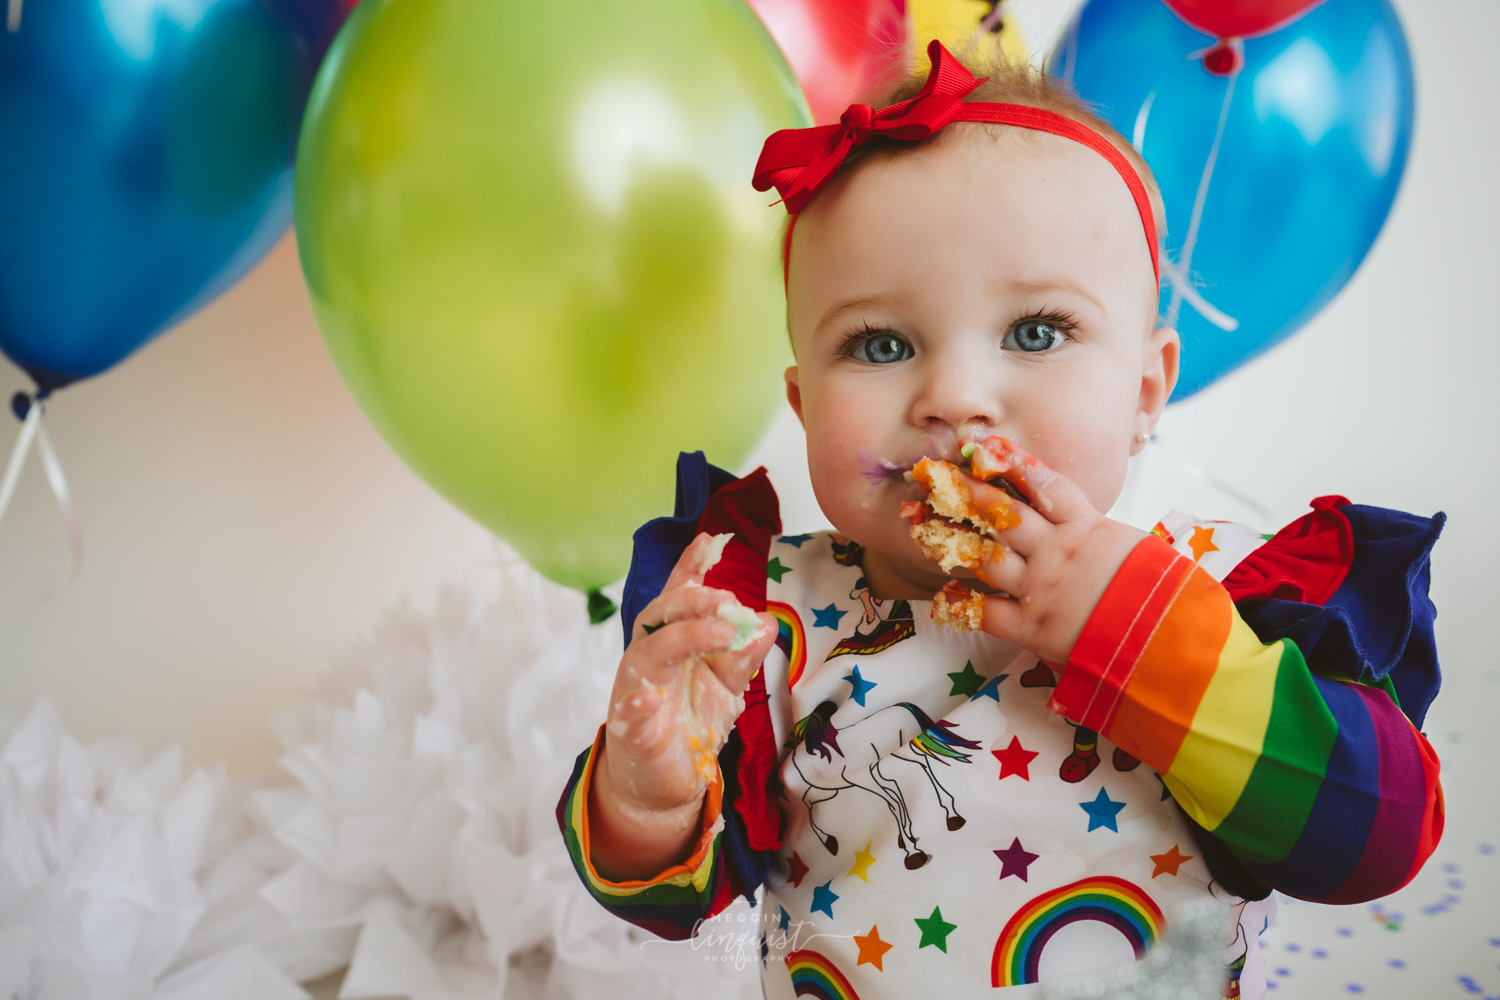 rainbow-brite-cake-smash-reno-photographer-12.jpg